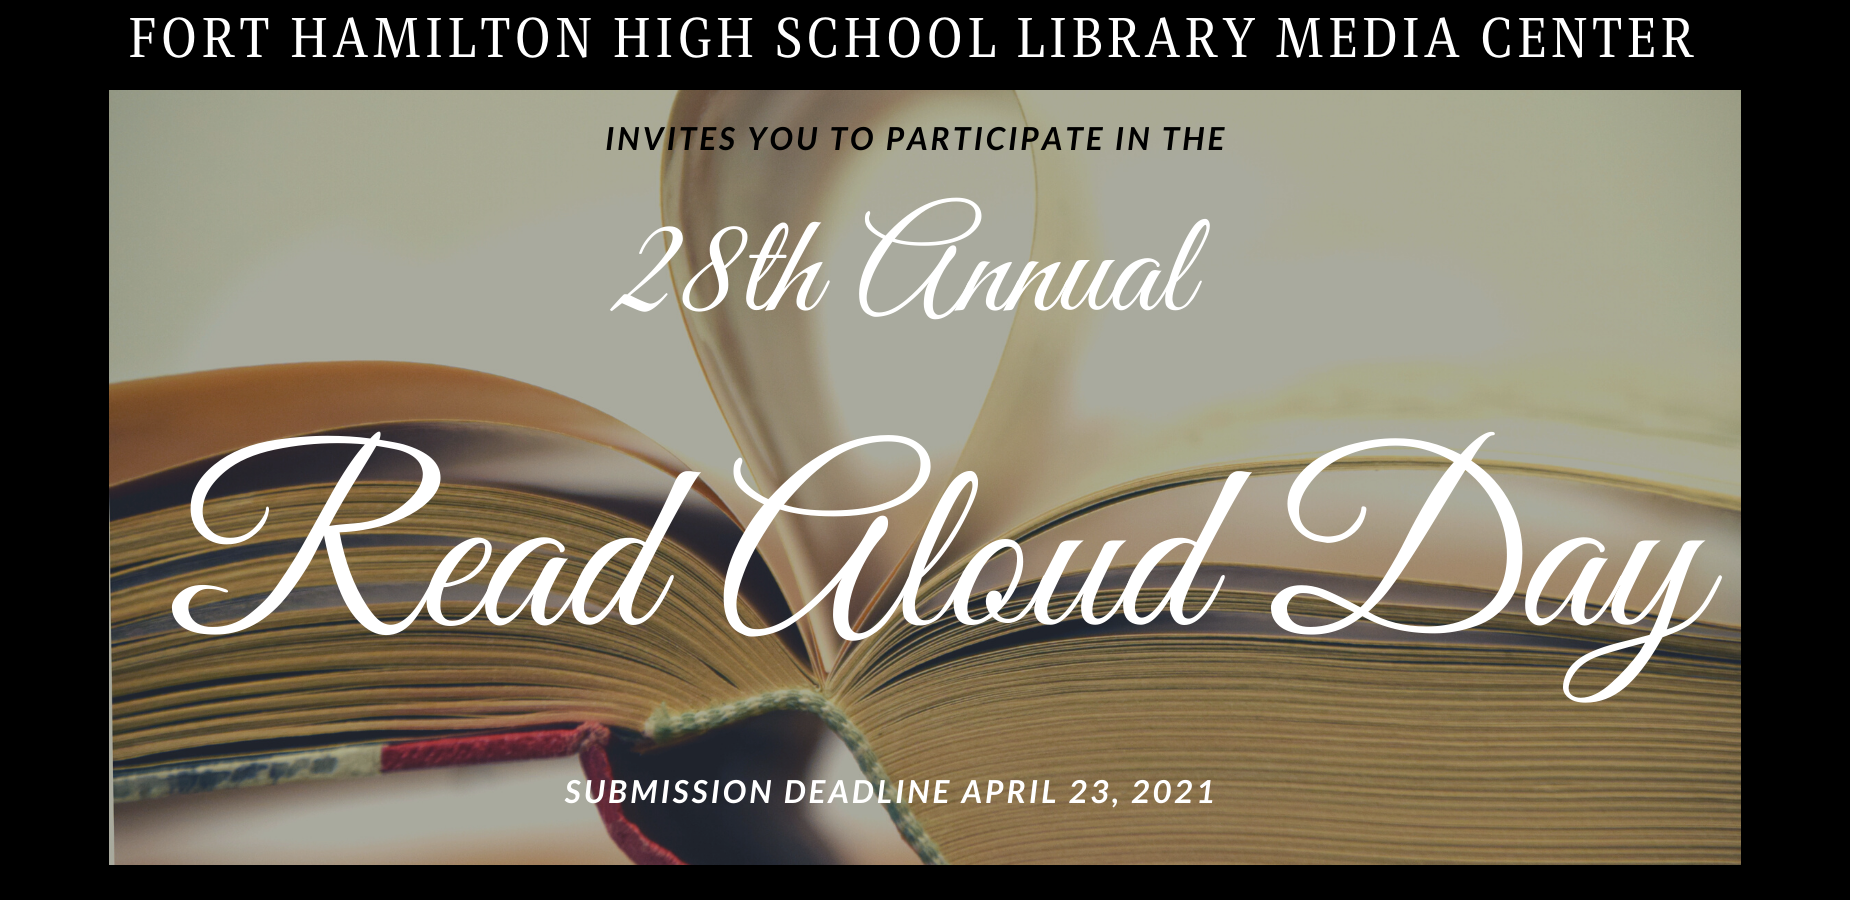 Fort Hamilton High School Library Media Center Invites you to participate in the 28th Annual Read Aloud Day. Submission Deadline April 23, 2021. Black background with an open book and page curled into the center.